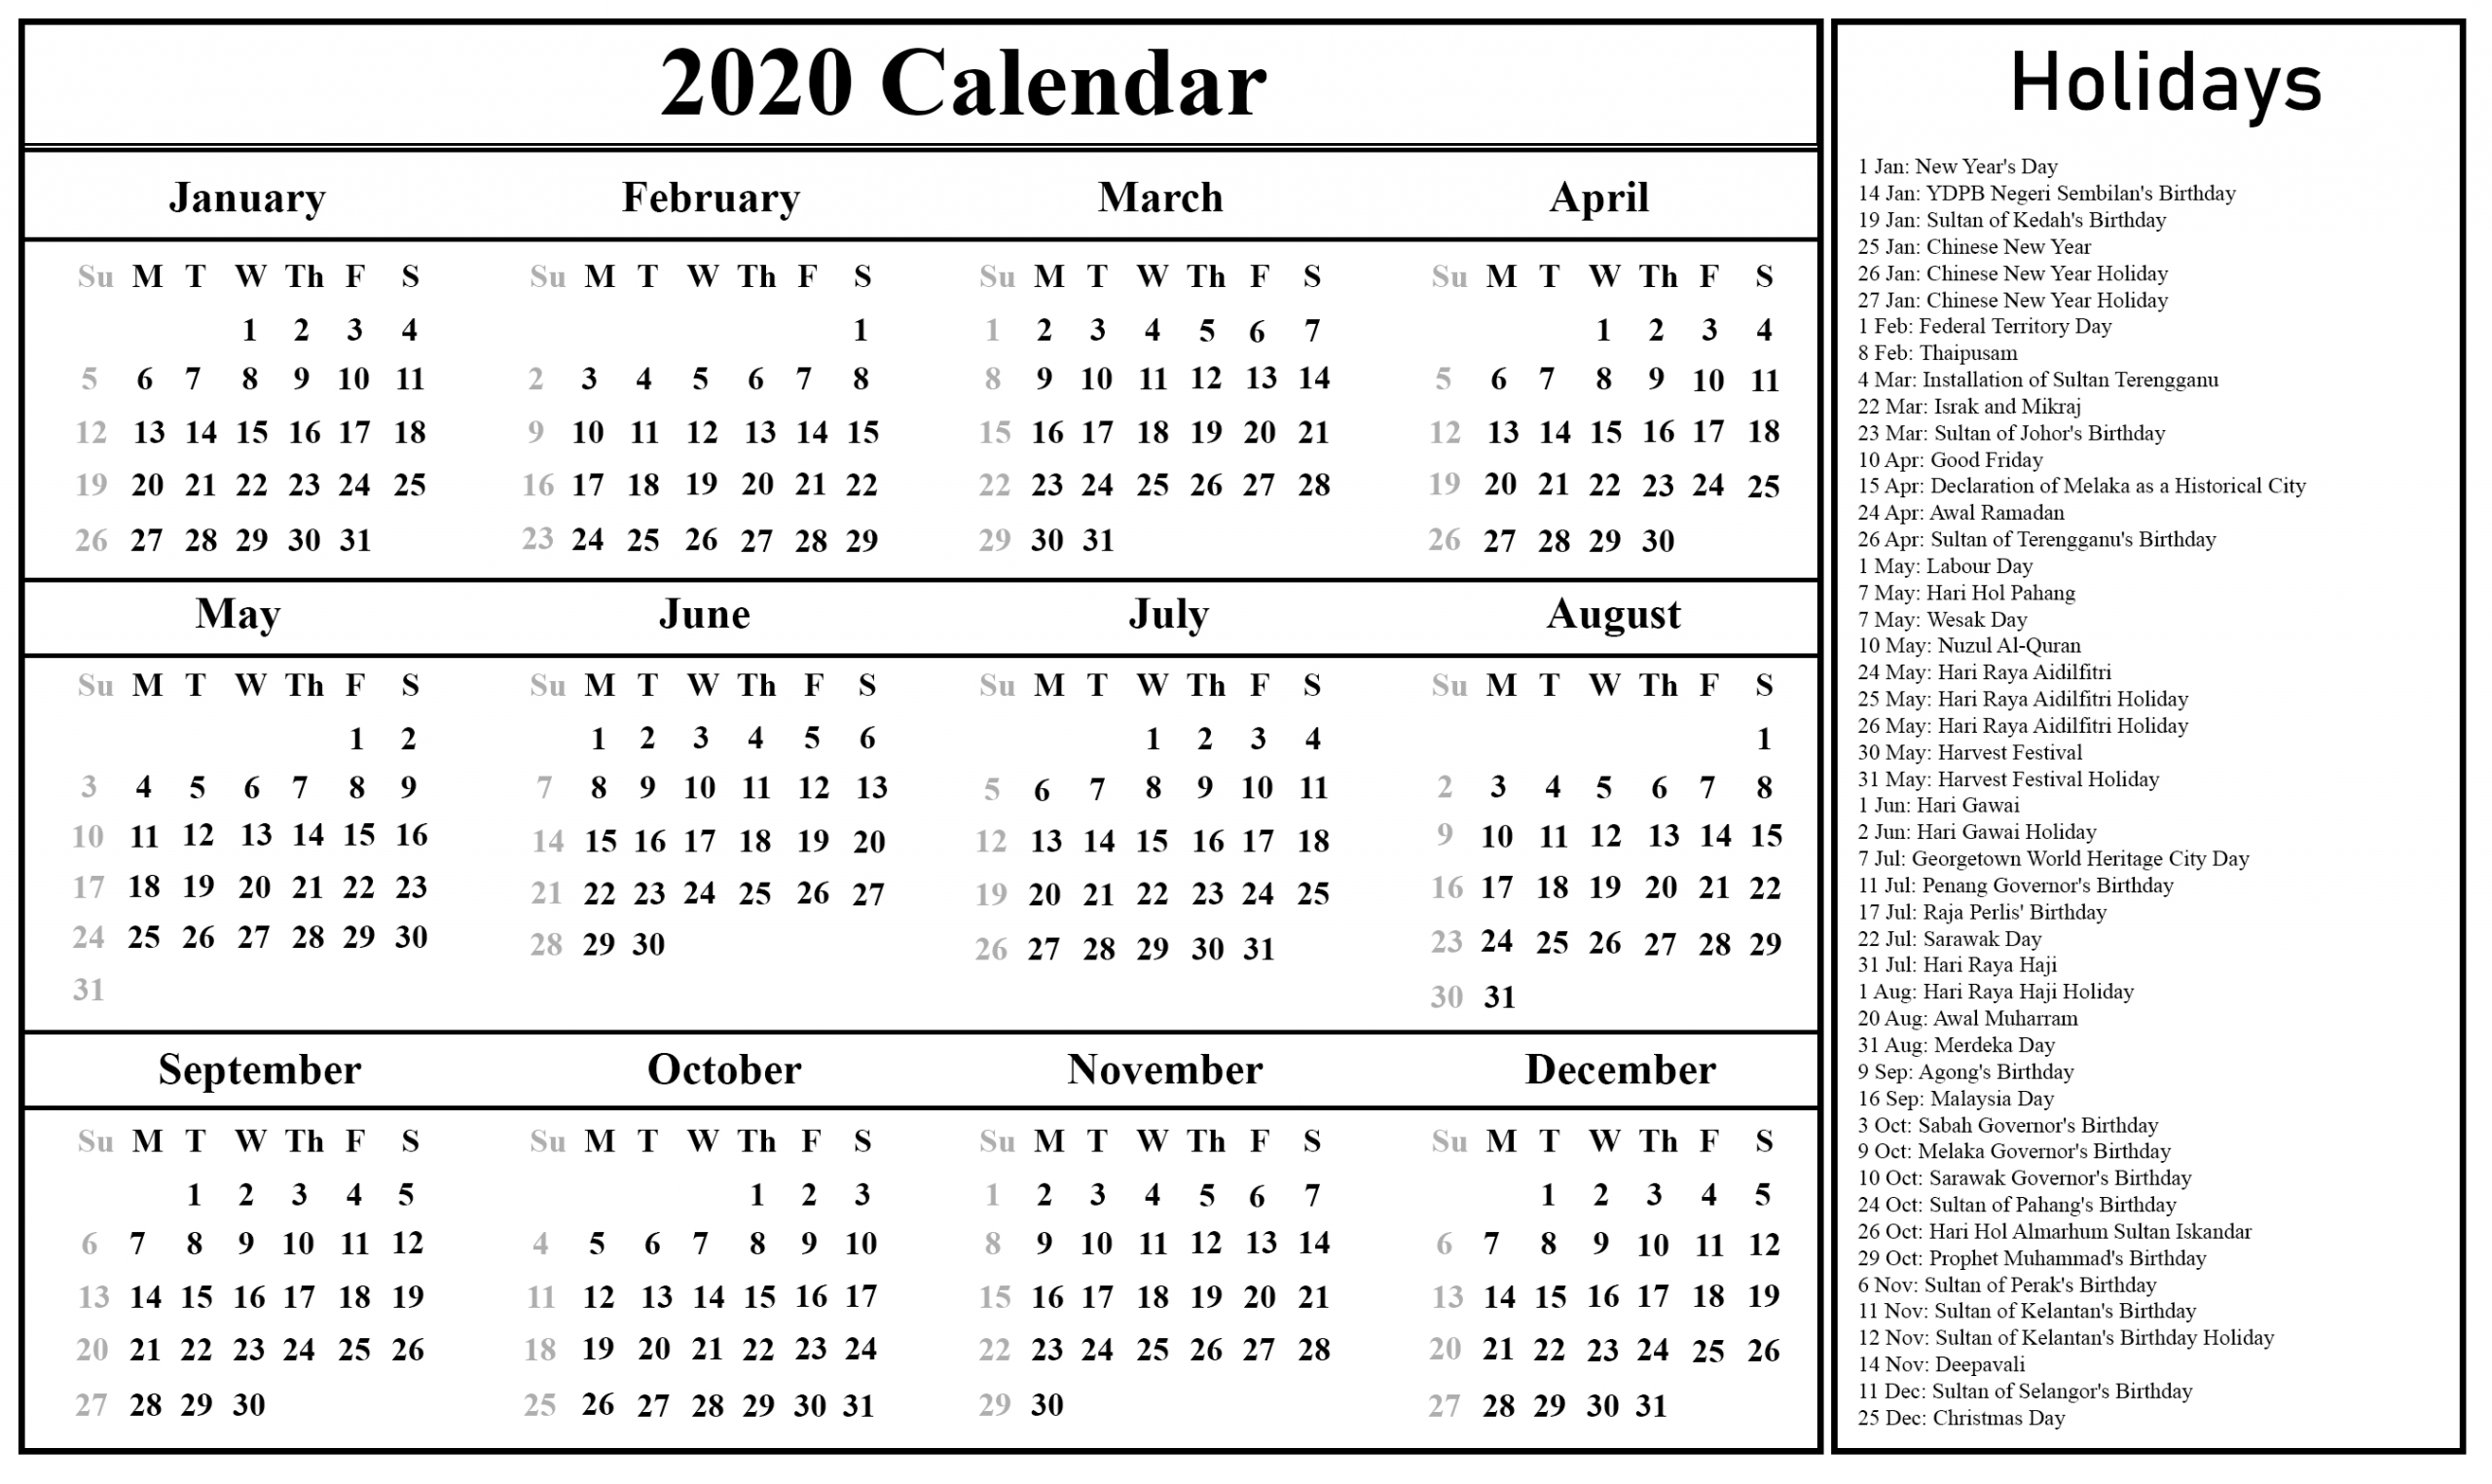 2020 Calendar With Holidays Printable - Togo.wpart.co